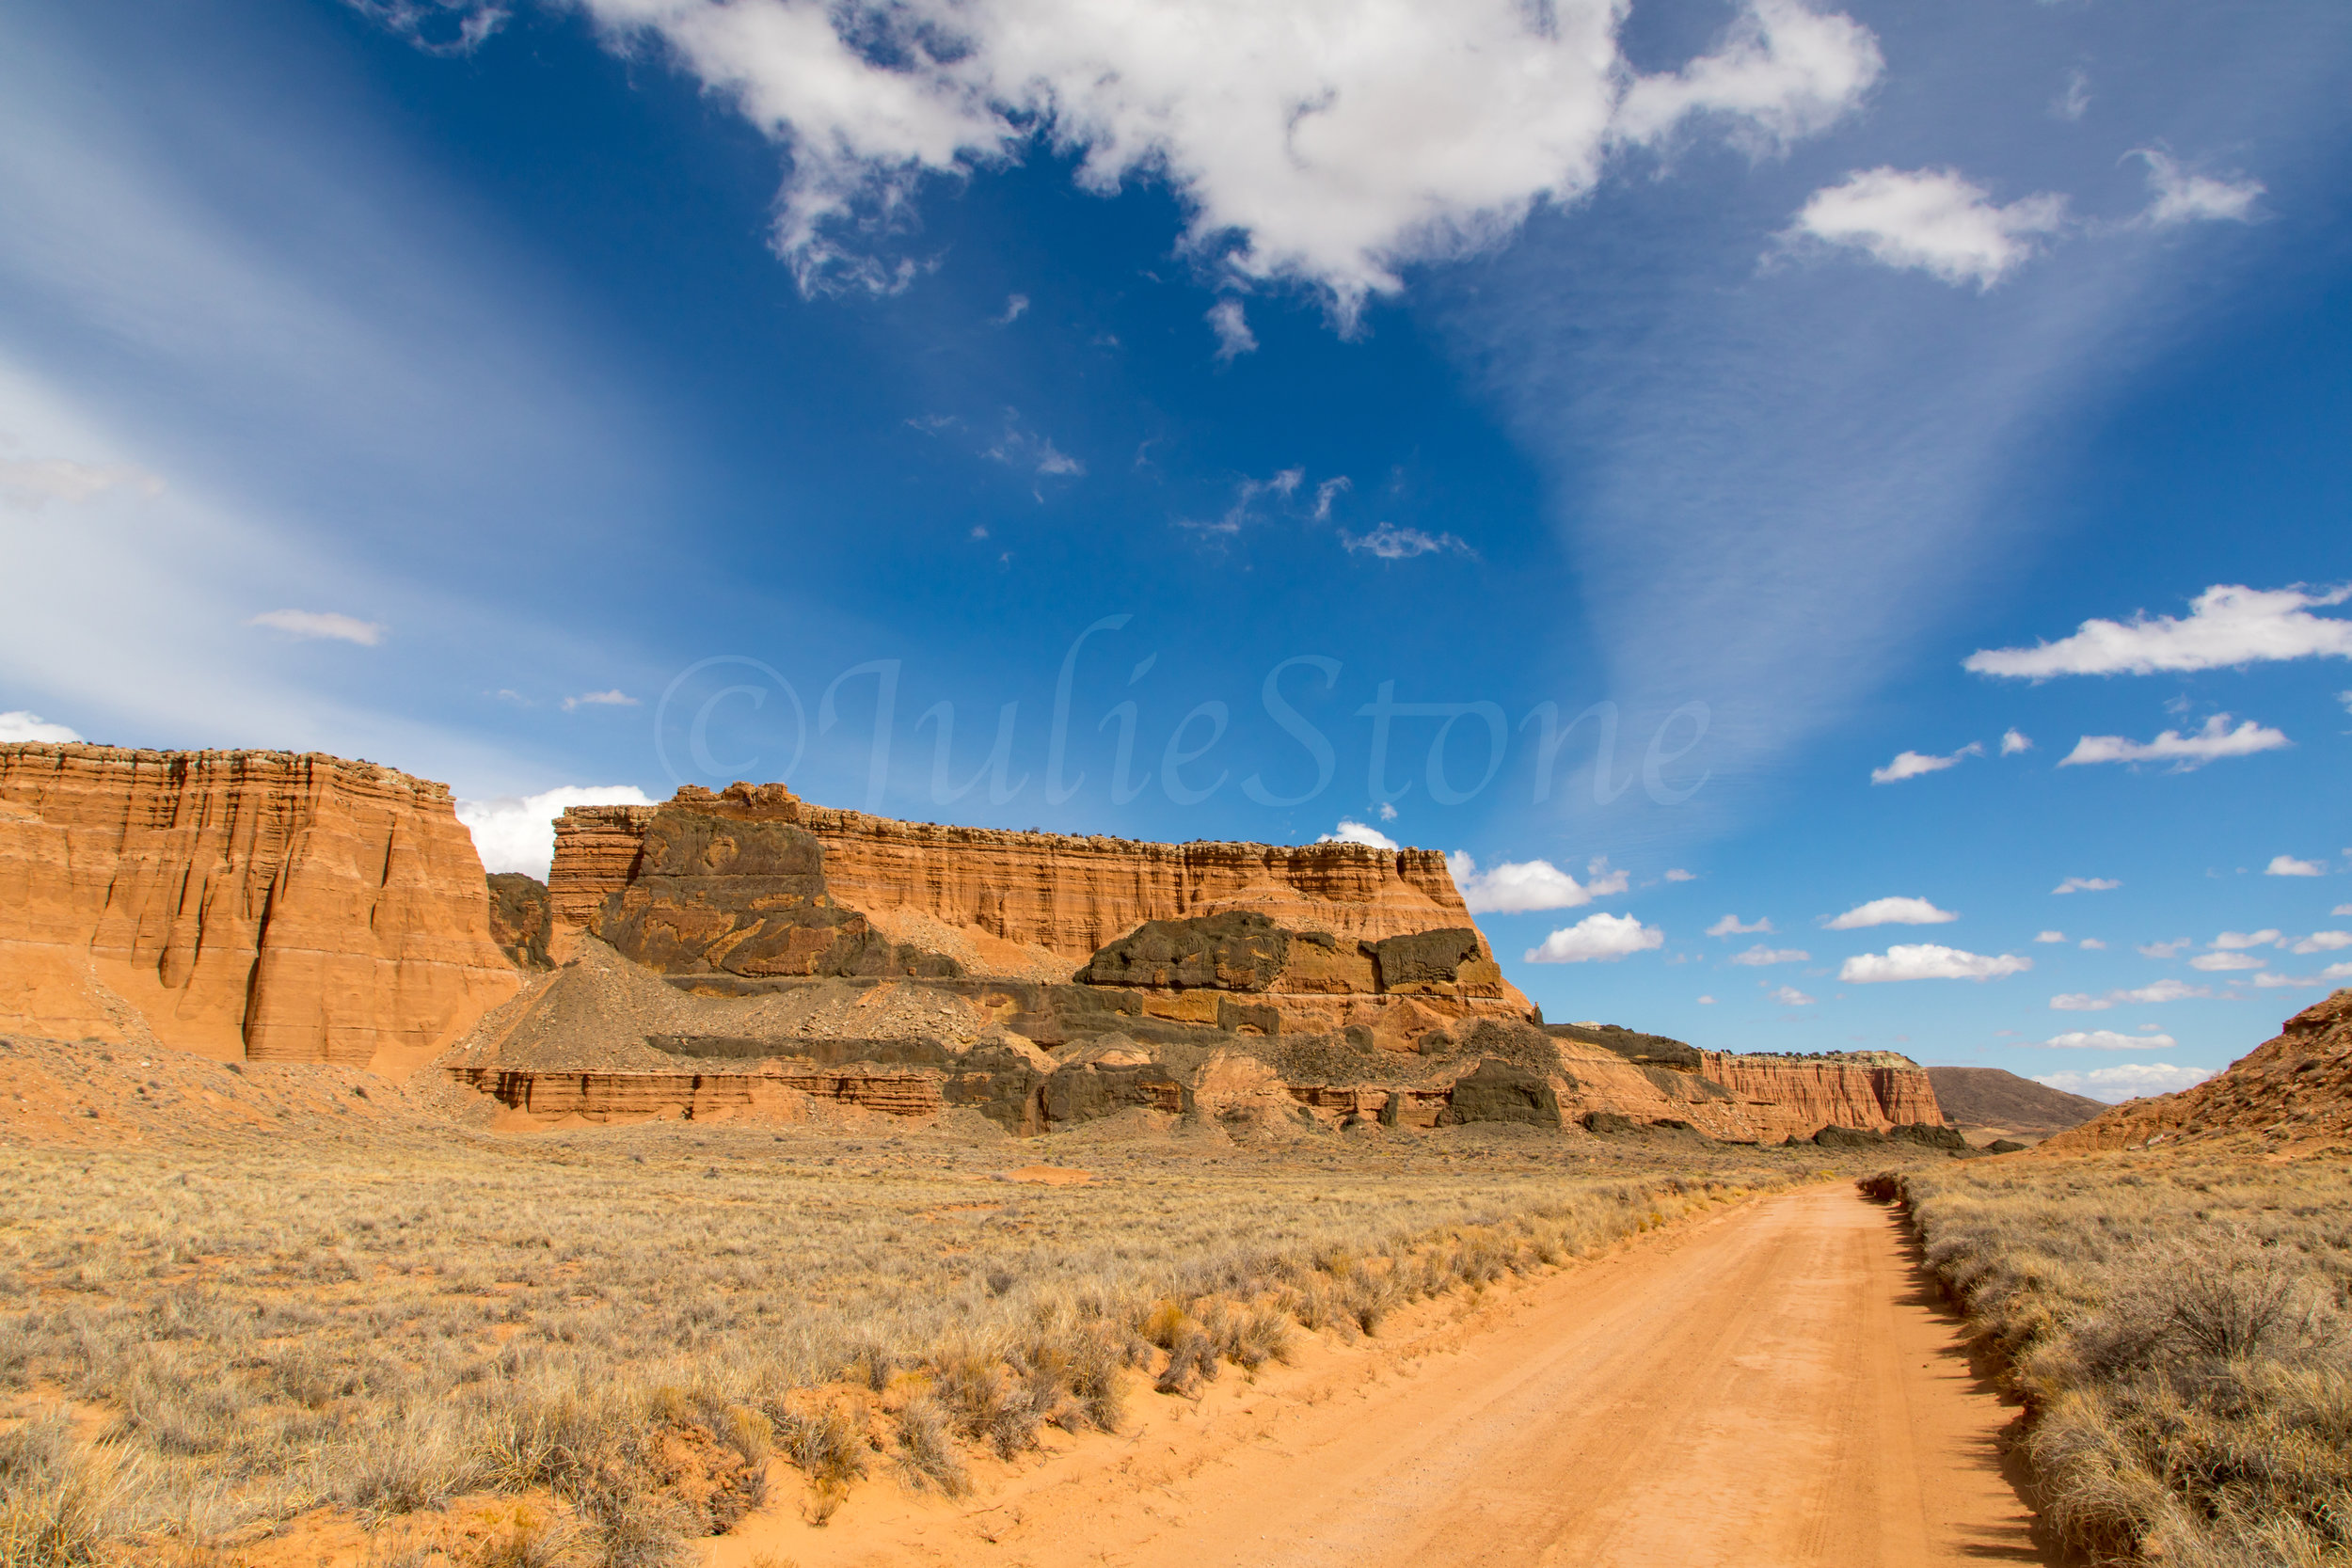 Capitol Reef National Park, Image # 2012